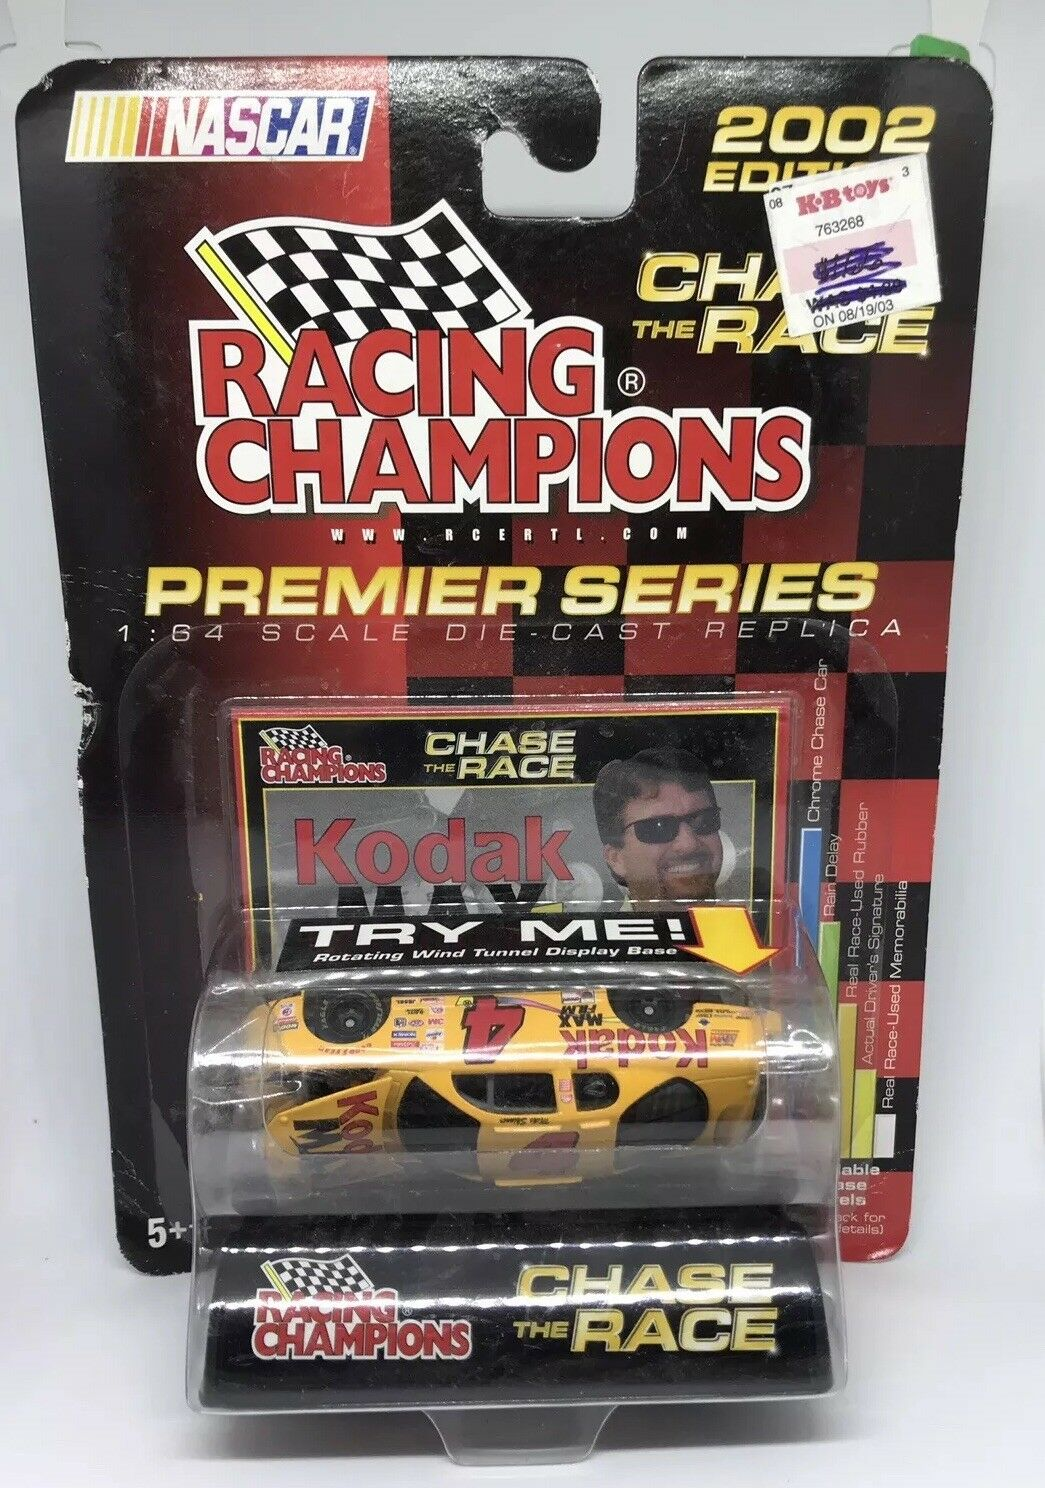 NASCAR Racing Champions Chase The Race  64 Scale Diecast Car